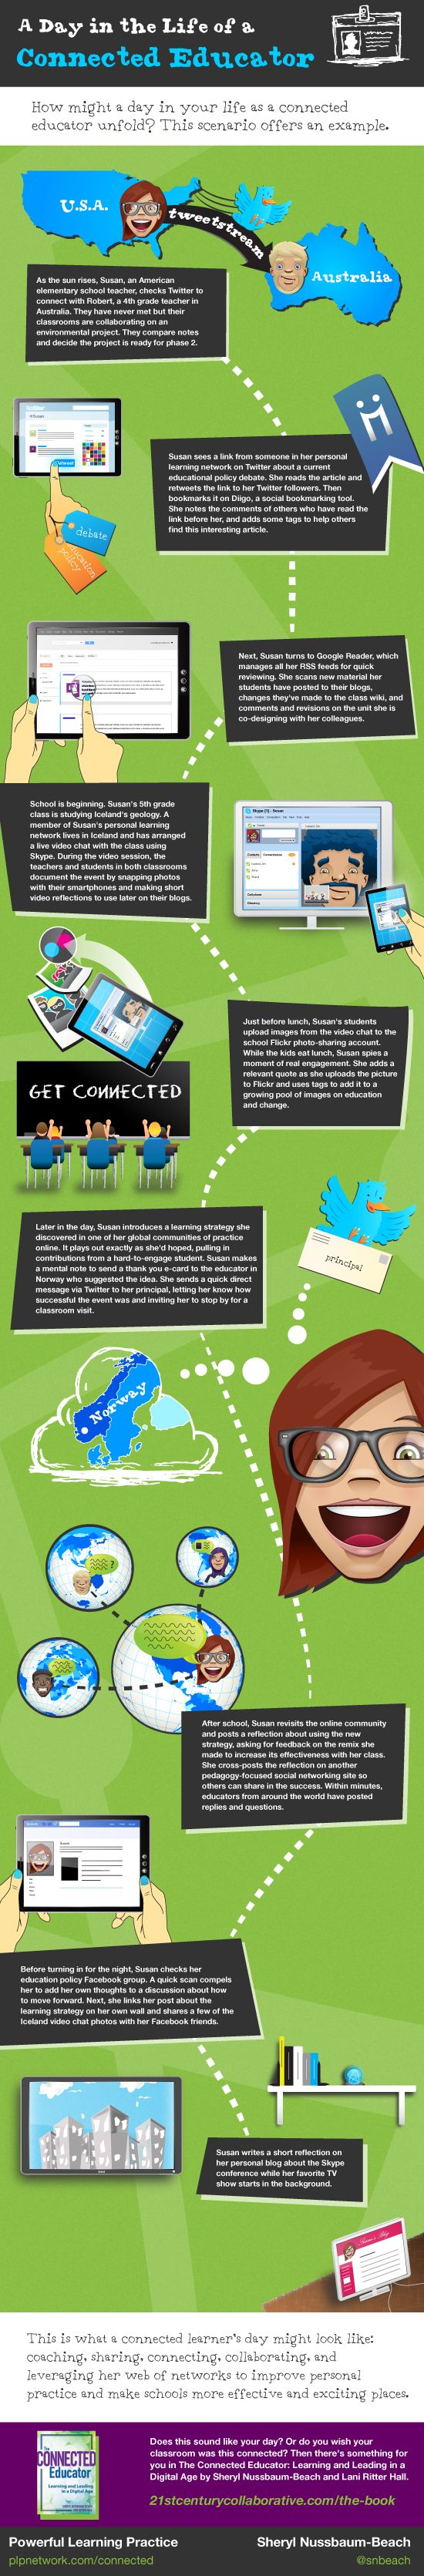 Un día en la vida de un educador conectado #infografia #infographic #education: Technology Infographics, Connected Educator, 21St Century Classroom, Century Educator, Education Infographics, Century Classrooms, Century Learner, Century Learning, Connected Teacher